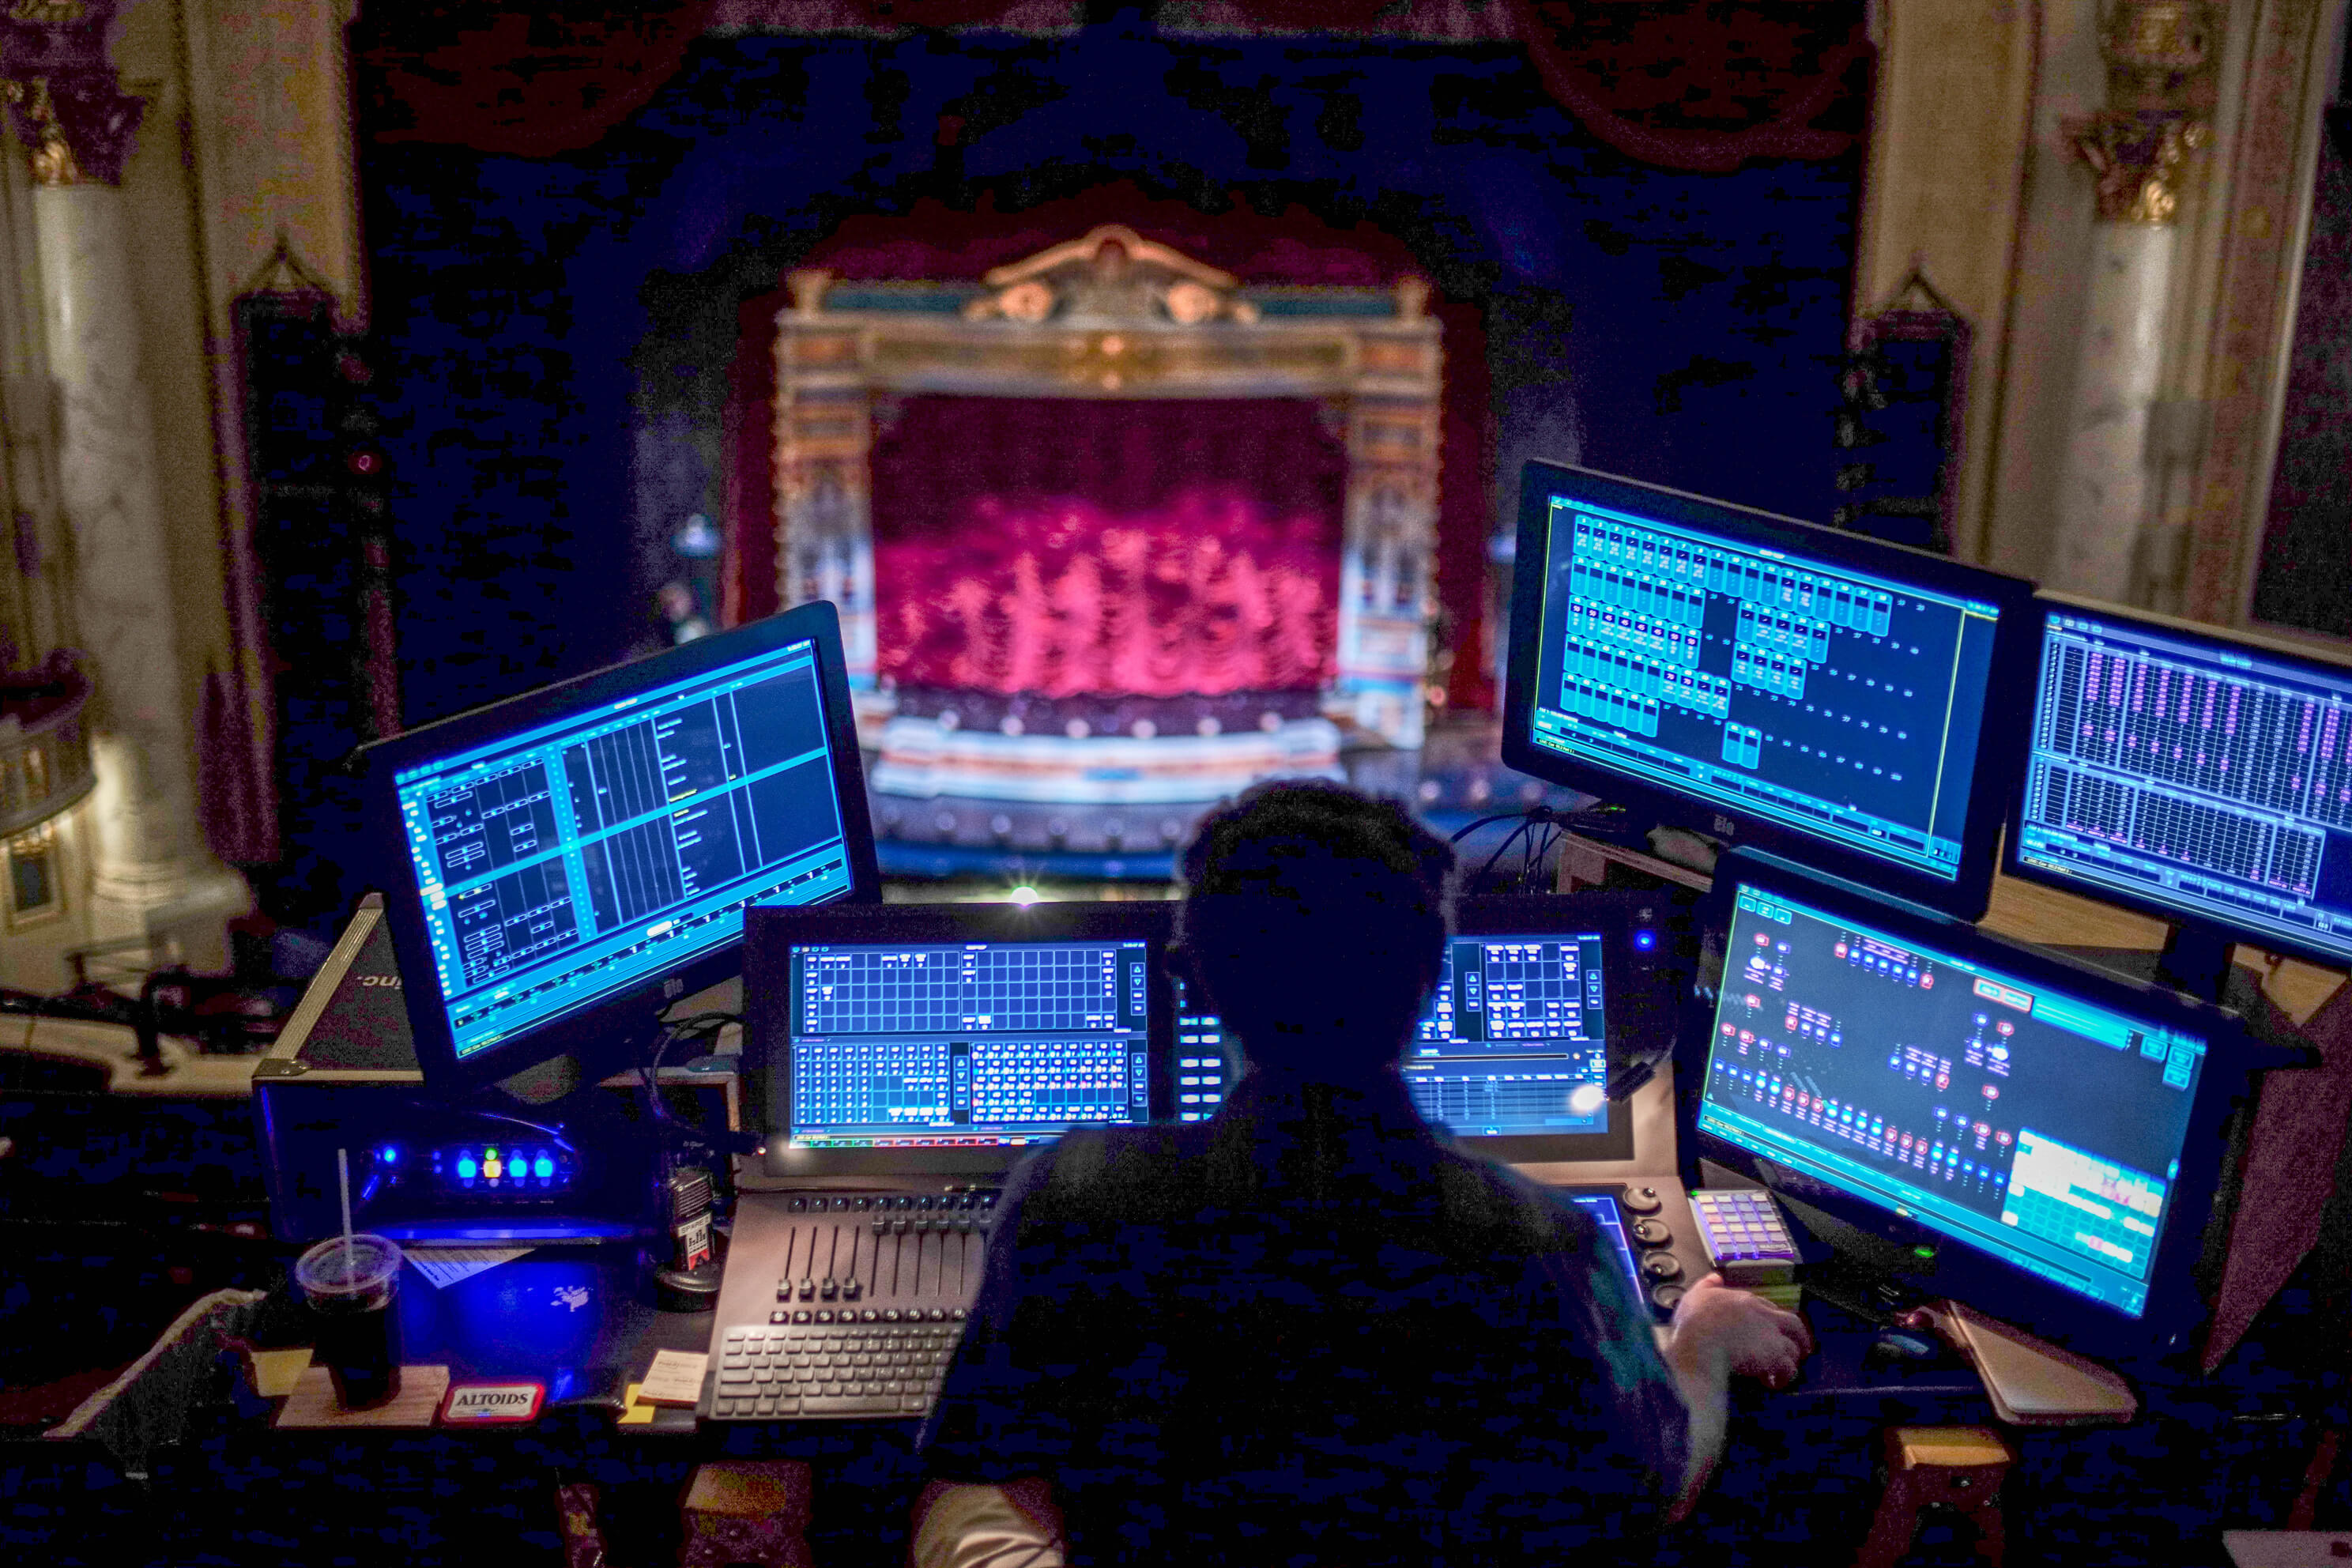 X-WEB-GGLAM-CONTROL-FROM-BALCONY